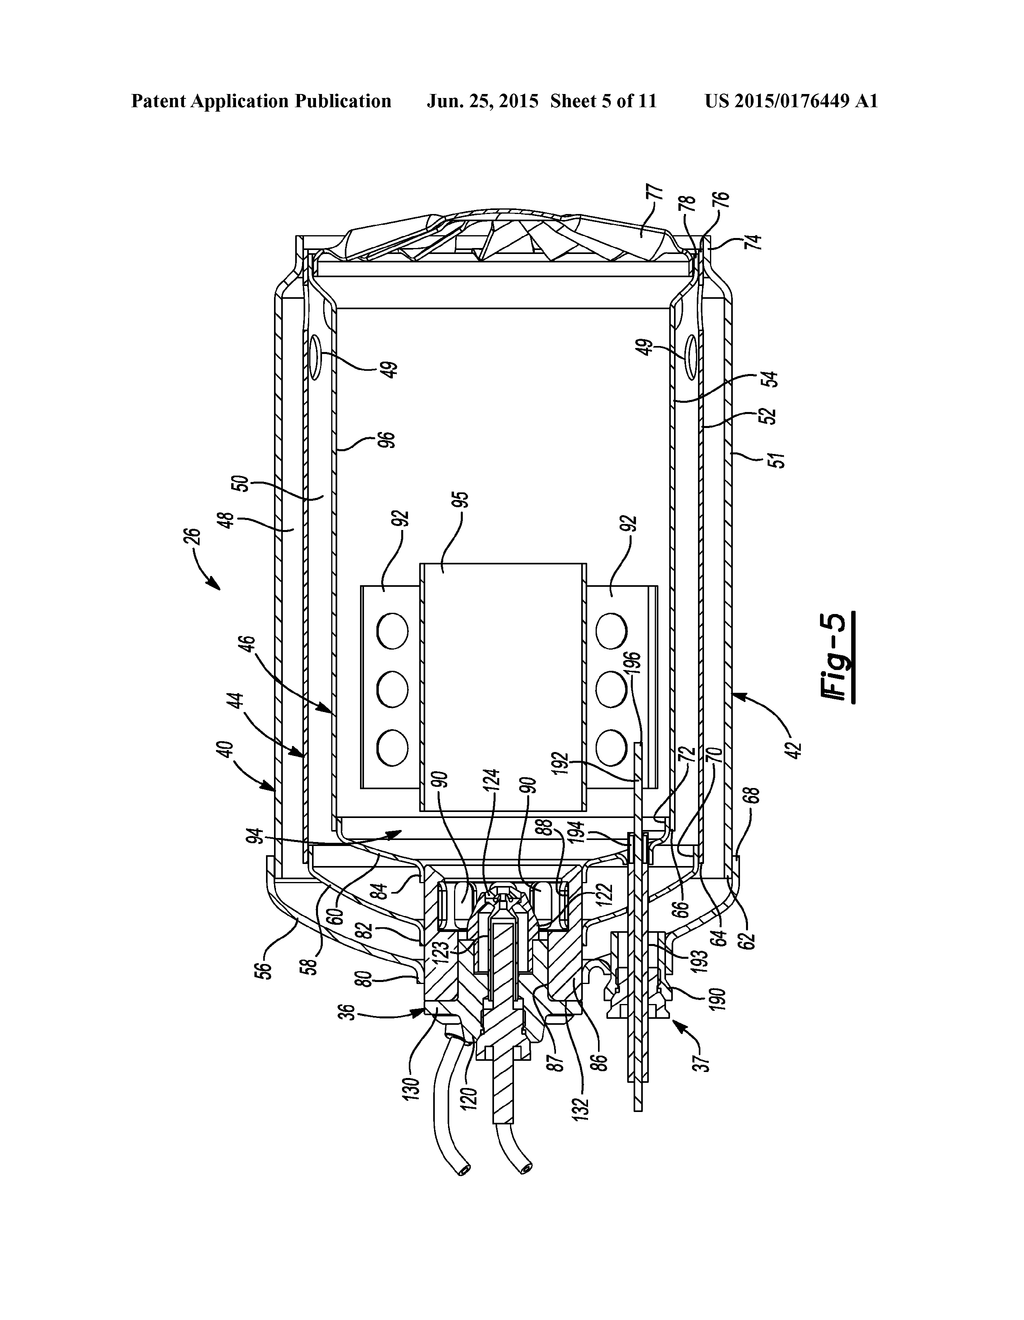 Burner With Air-Assisted Fuel Nozzle And Vaporizing Ignition System